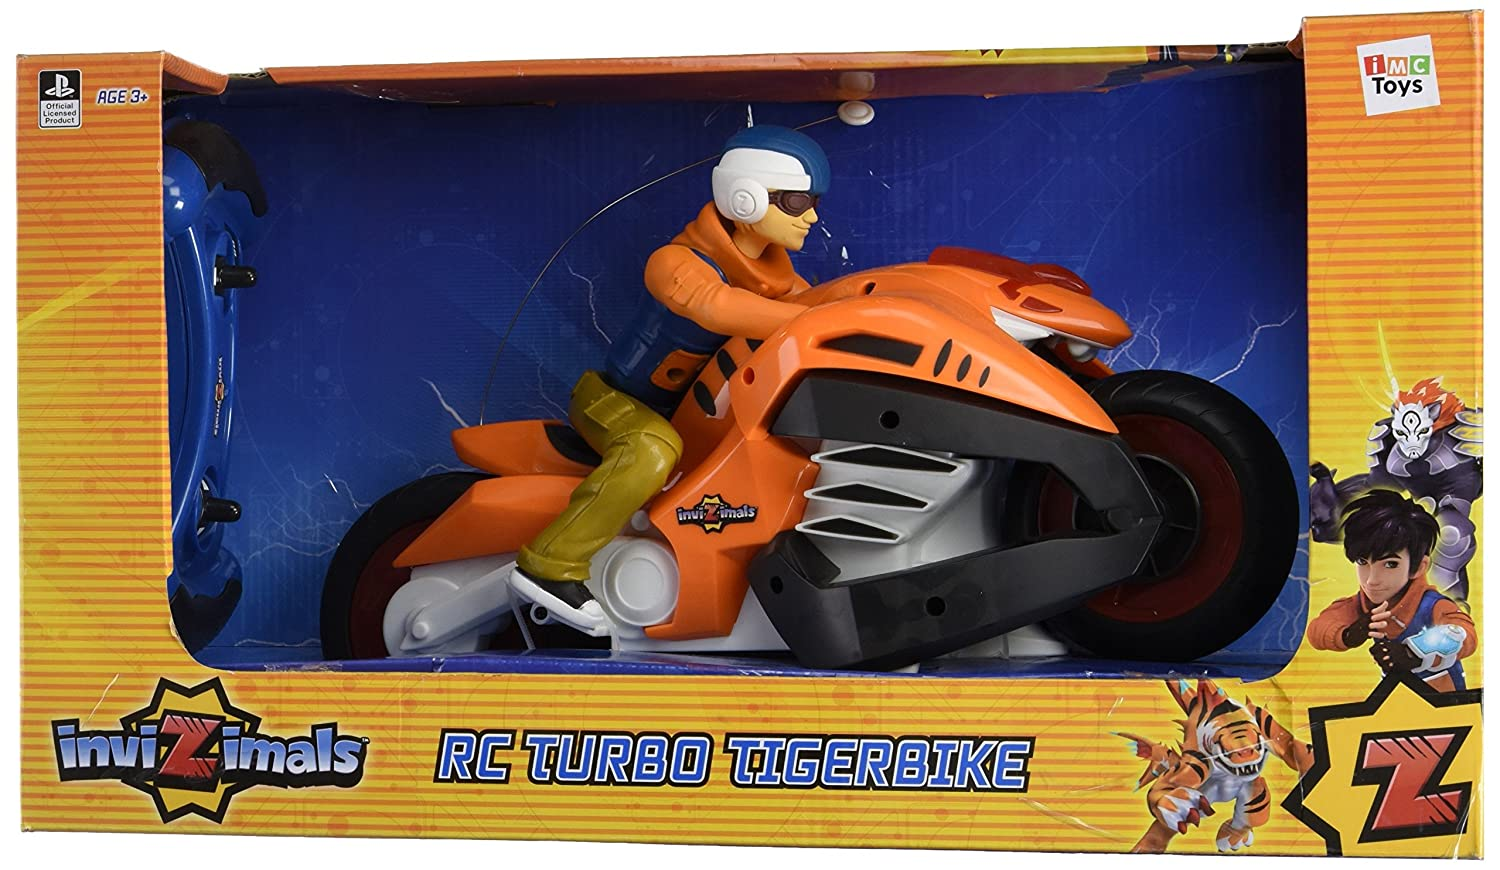 Invizimals - Turbo Tigerbike, Moto radiocontrol (IMC Toys S.A.): Amazon.es: Juguetes y juegos